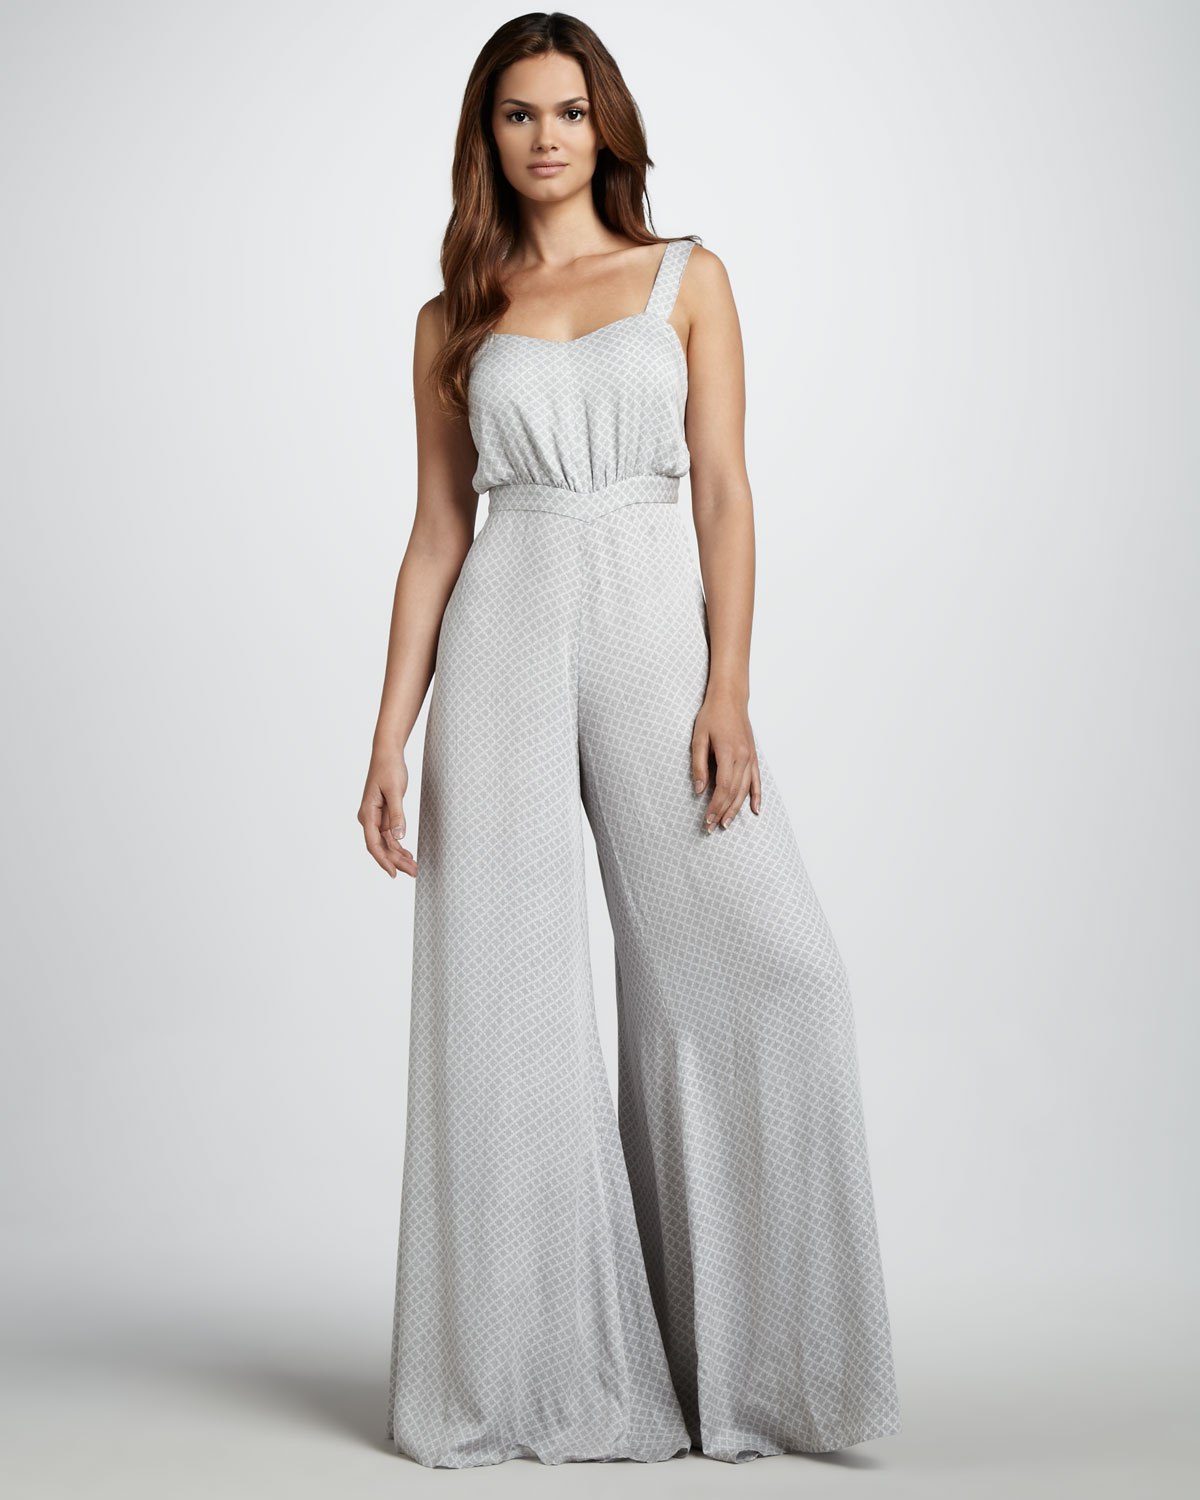 Camilla Amp Marc Wideleg Jumpsuit In Gray Lyst